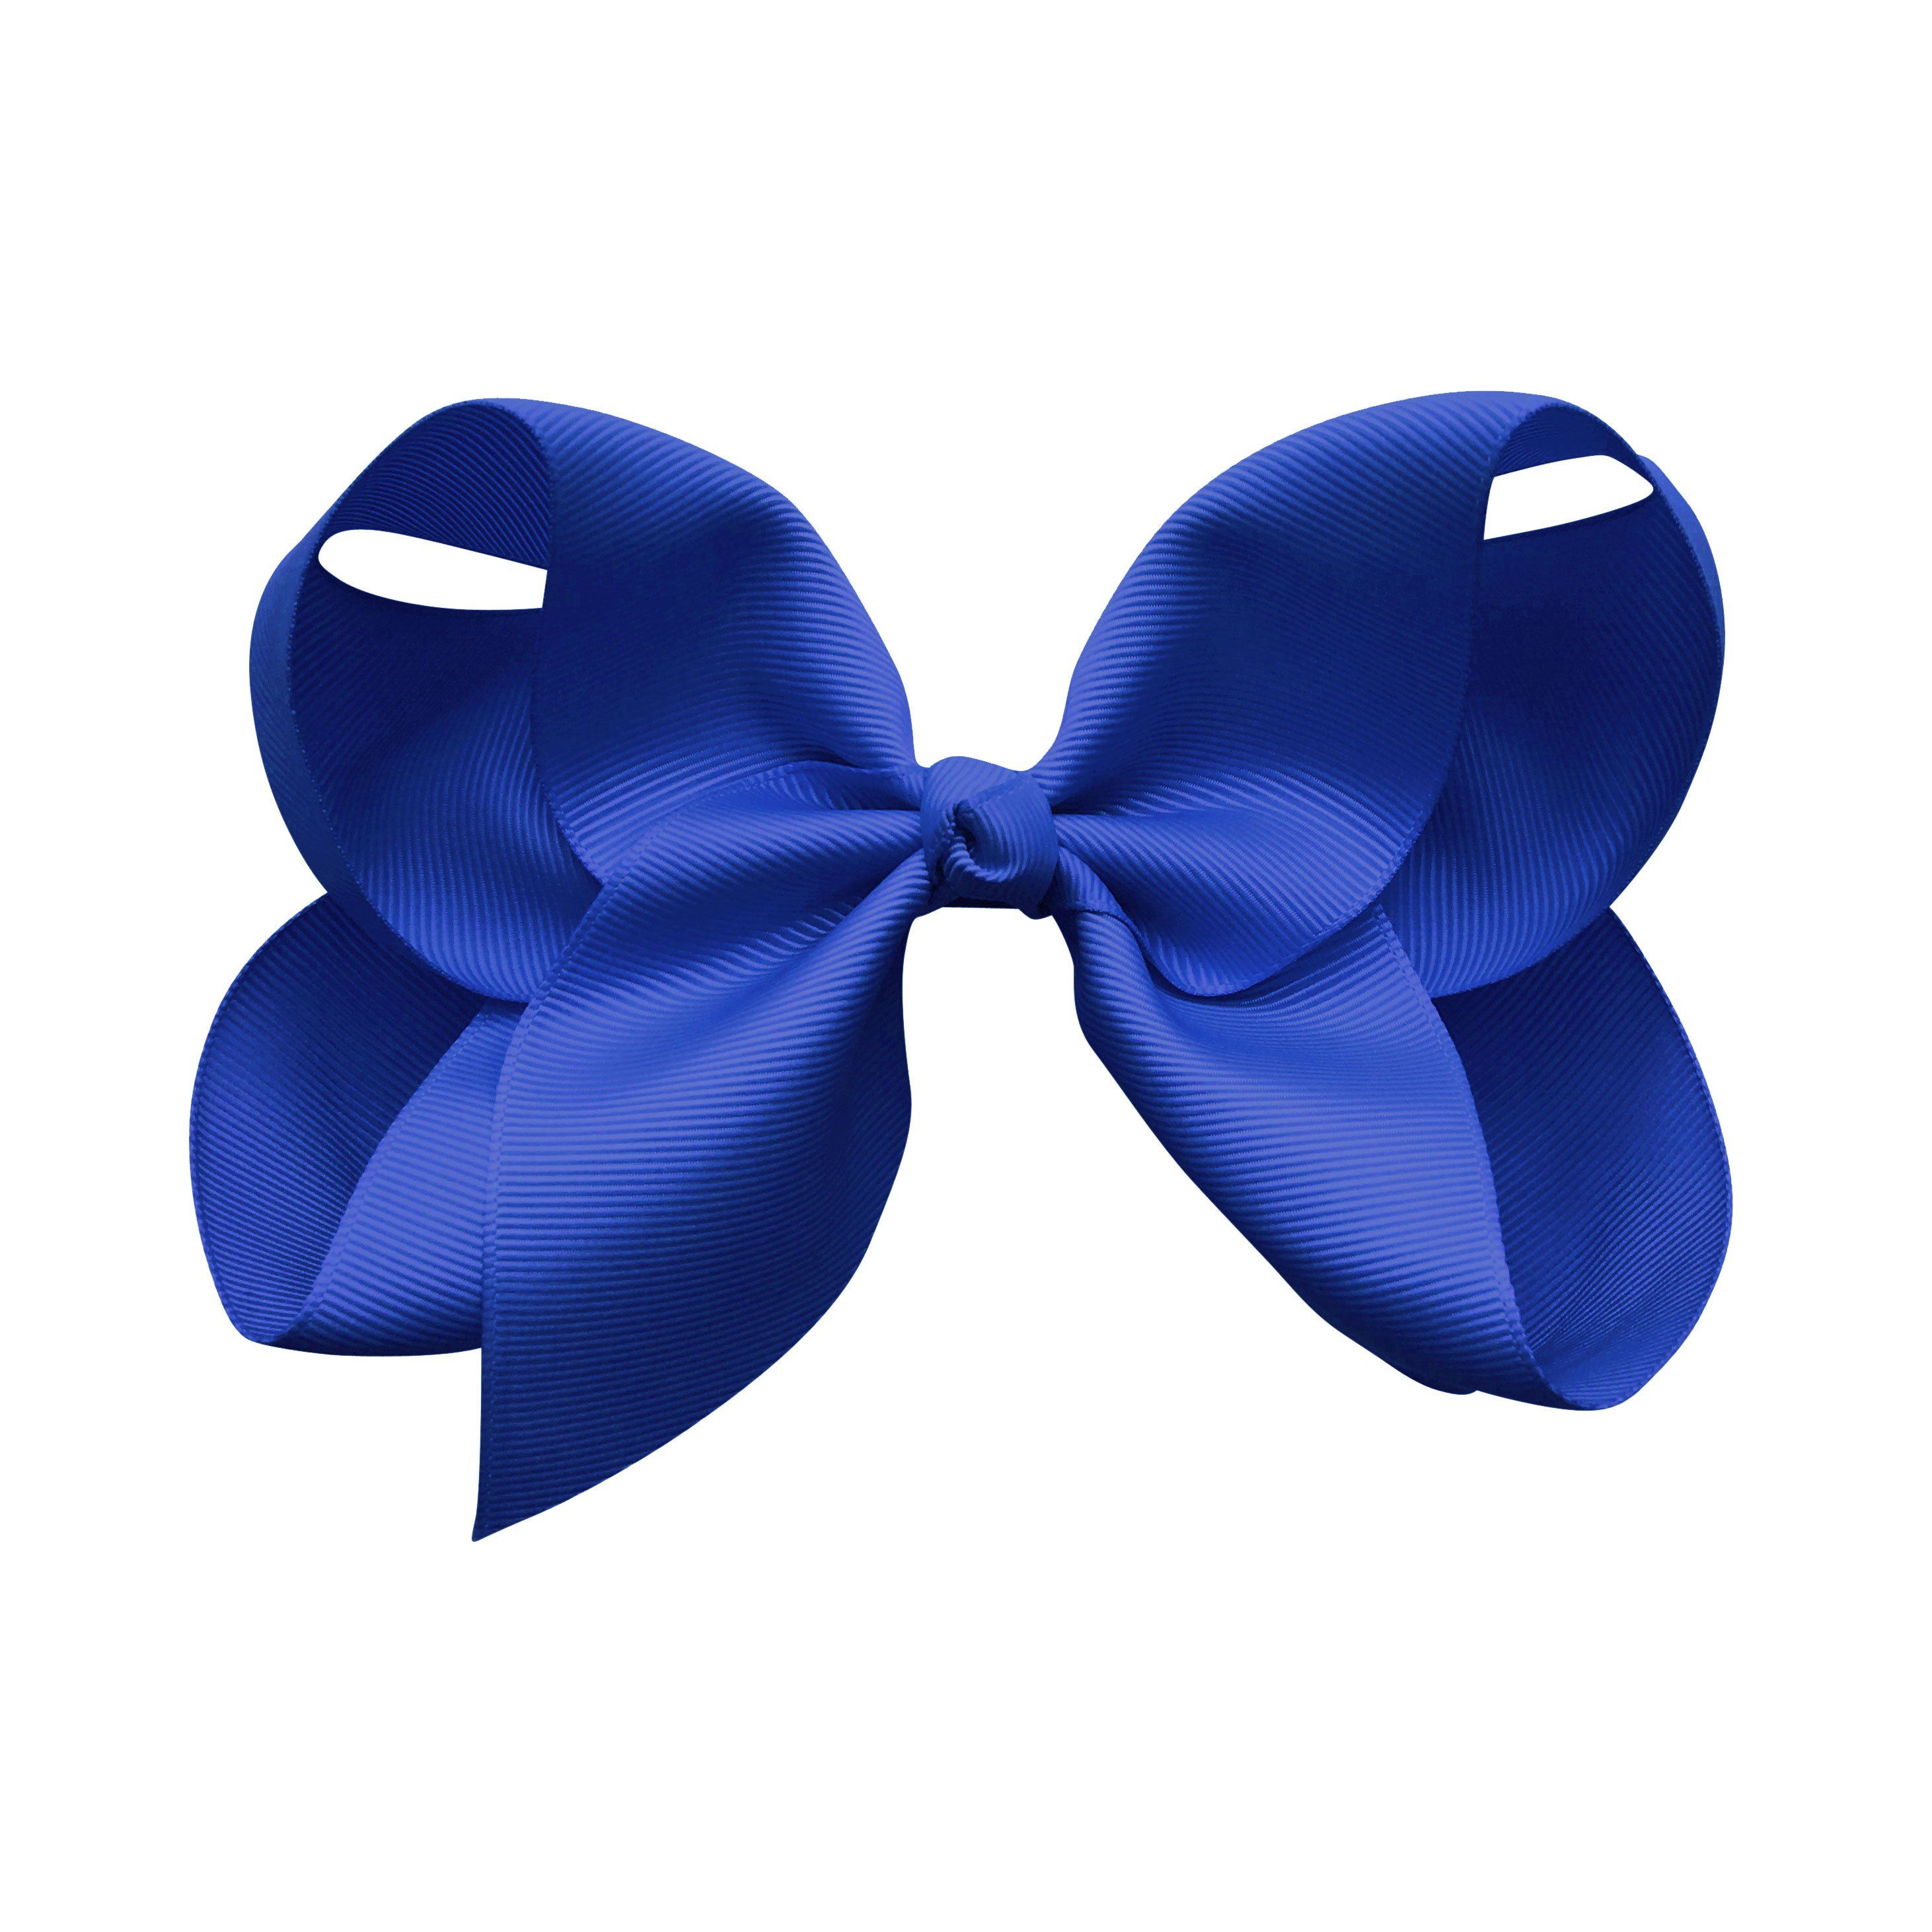 Image of Jumbo Boutique Bow - alligator clip - Cobalt